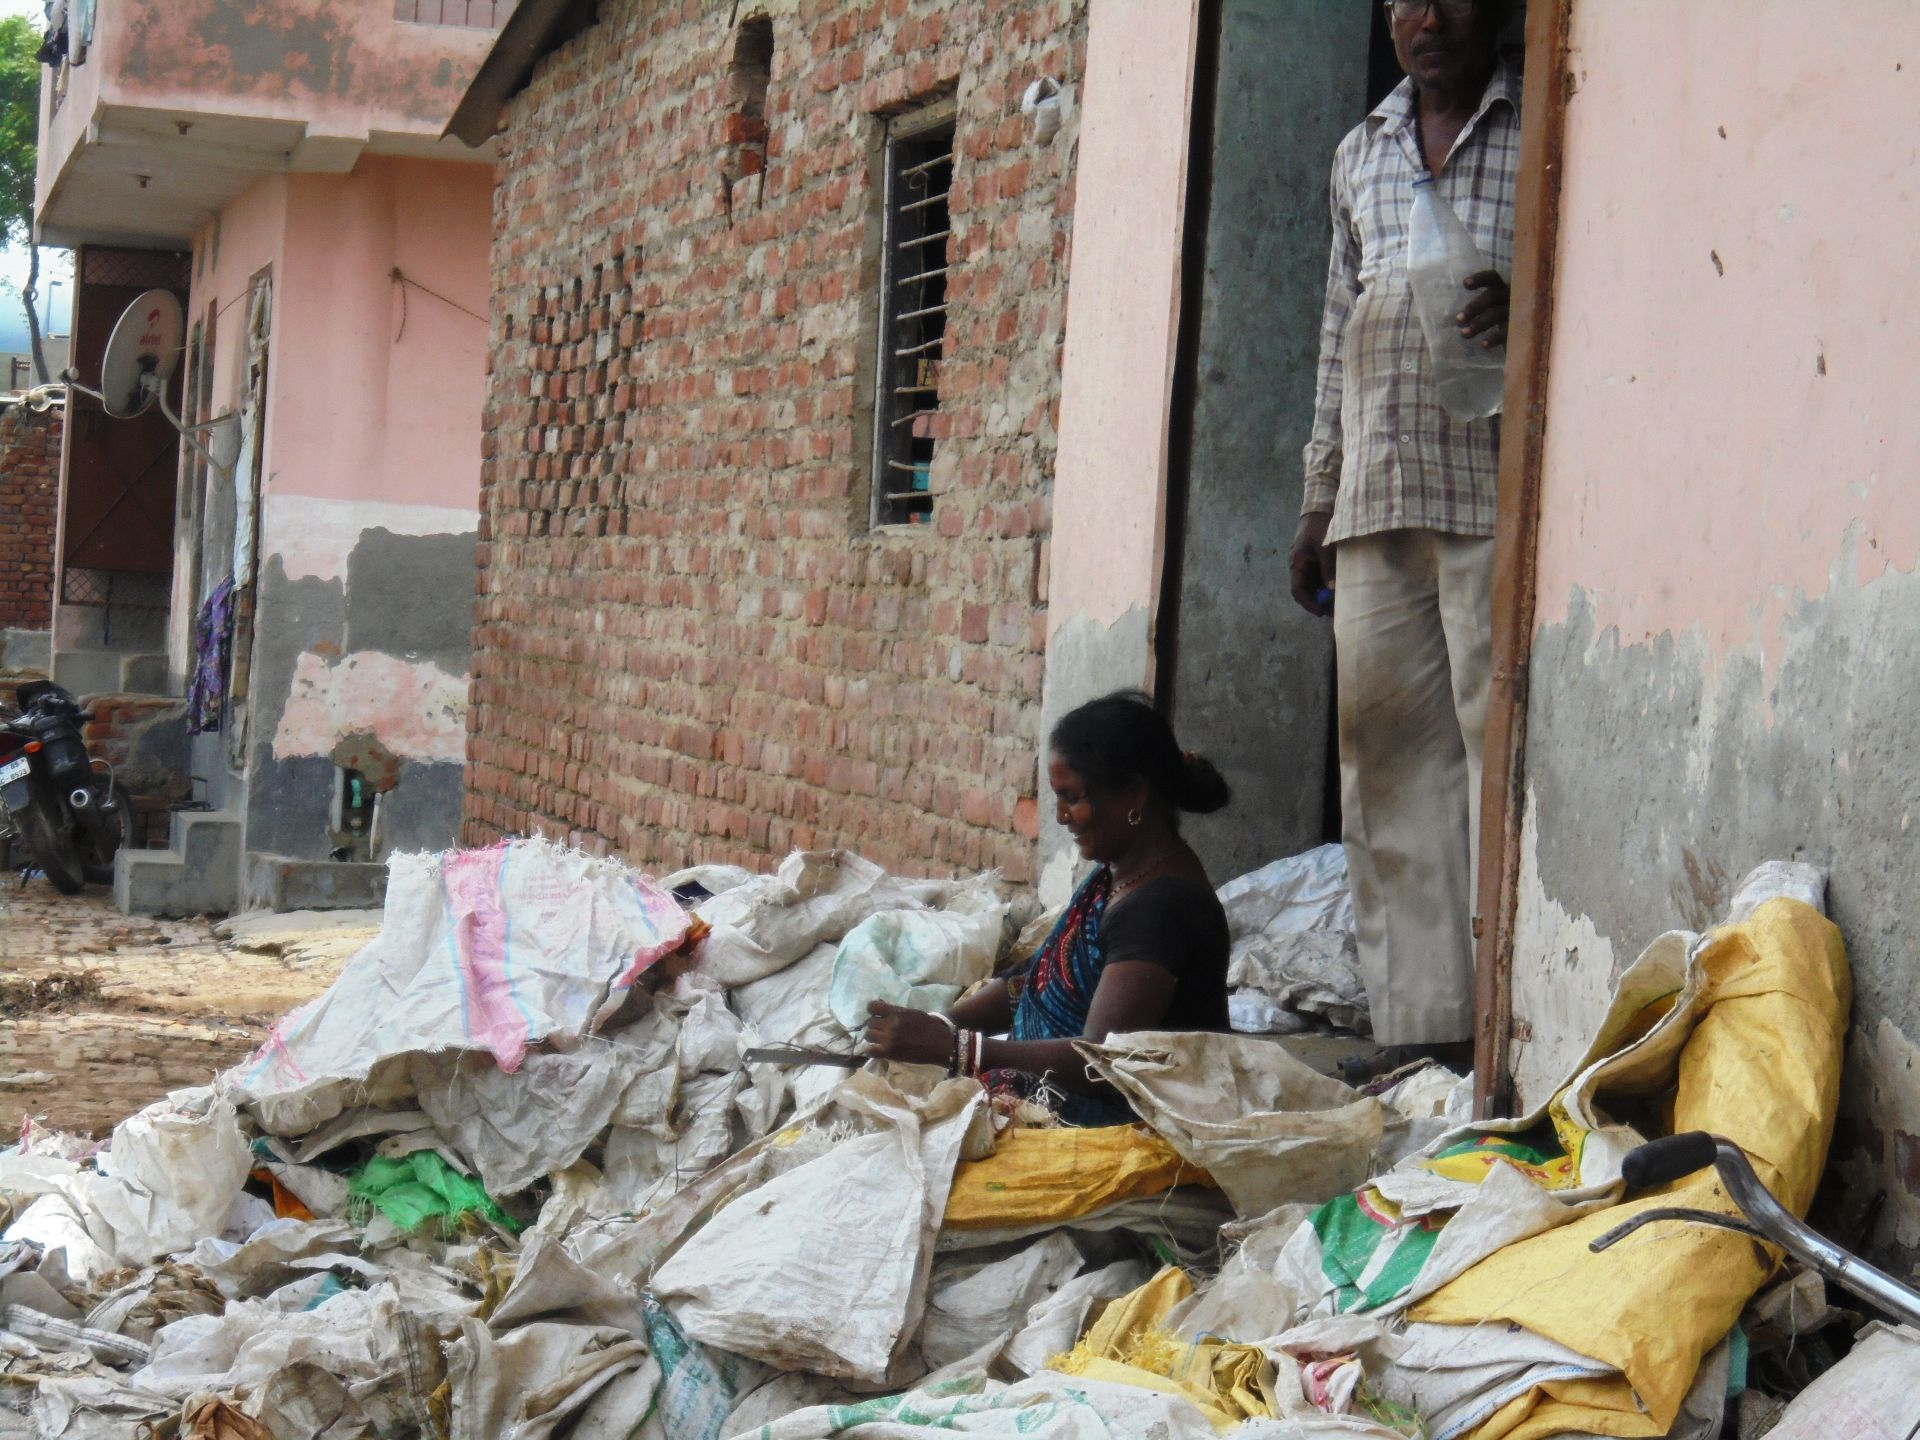 Shalu works as a ragpicker at the Bhalaswa dump site now.